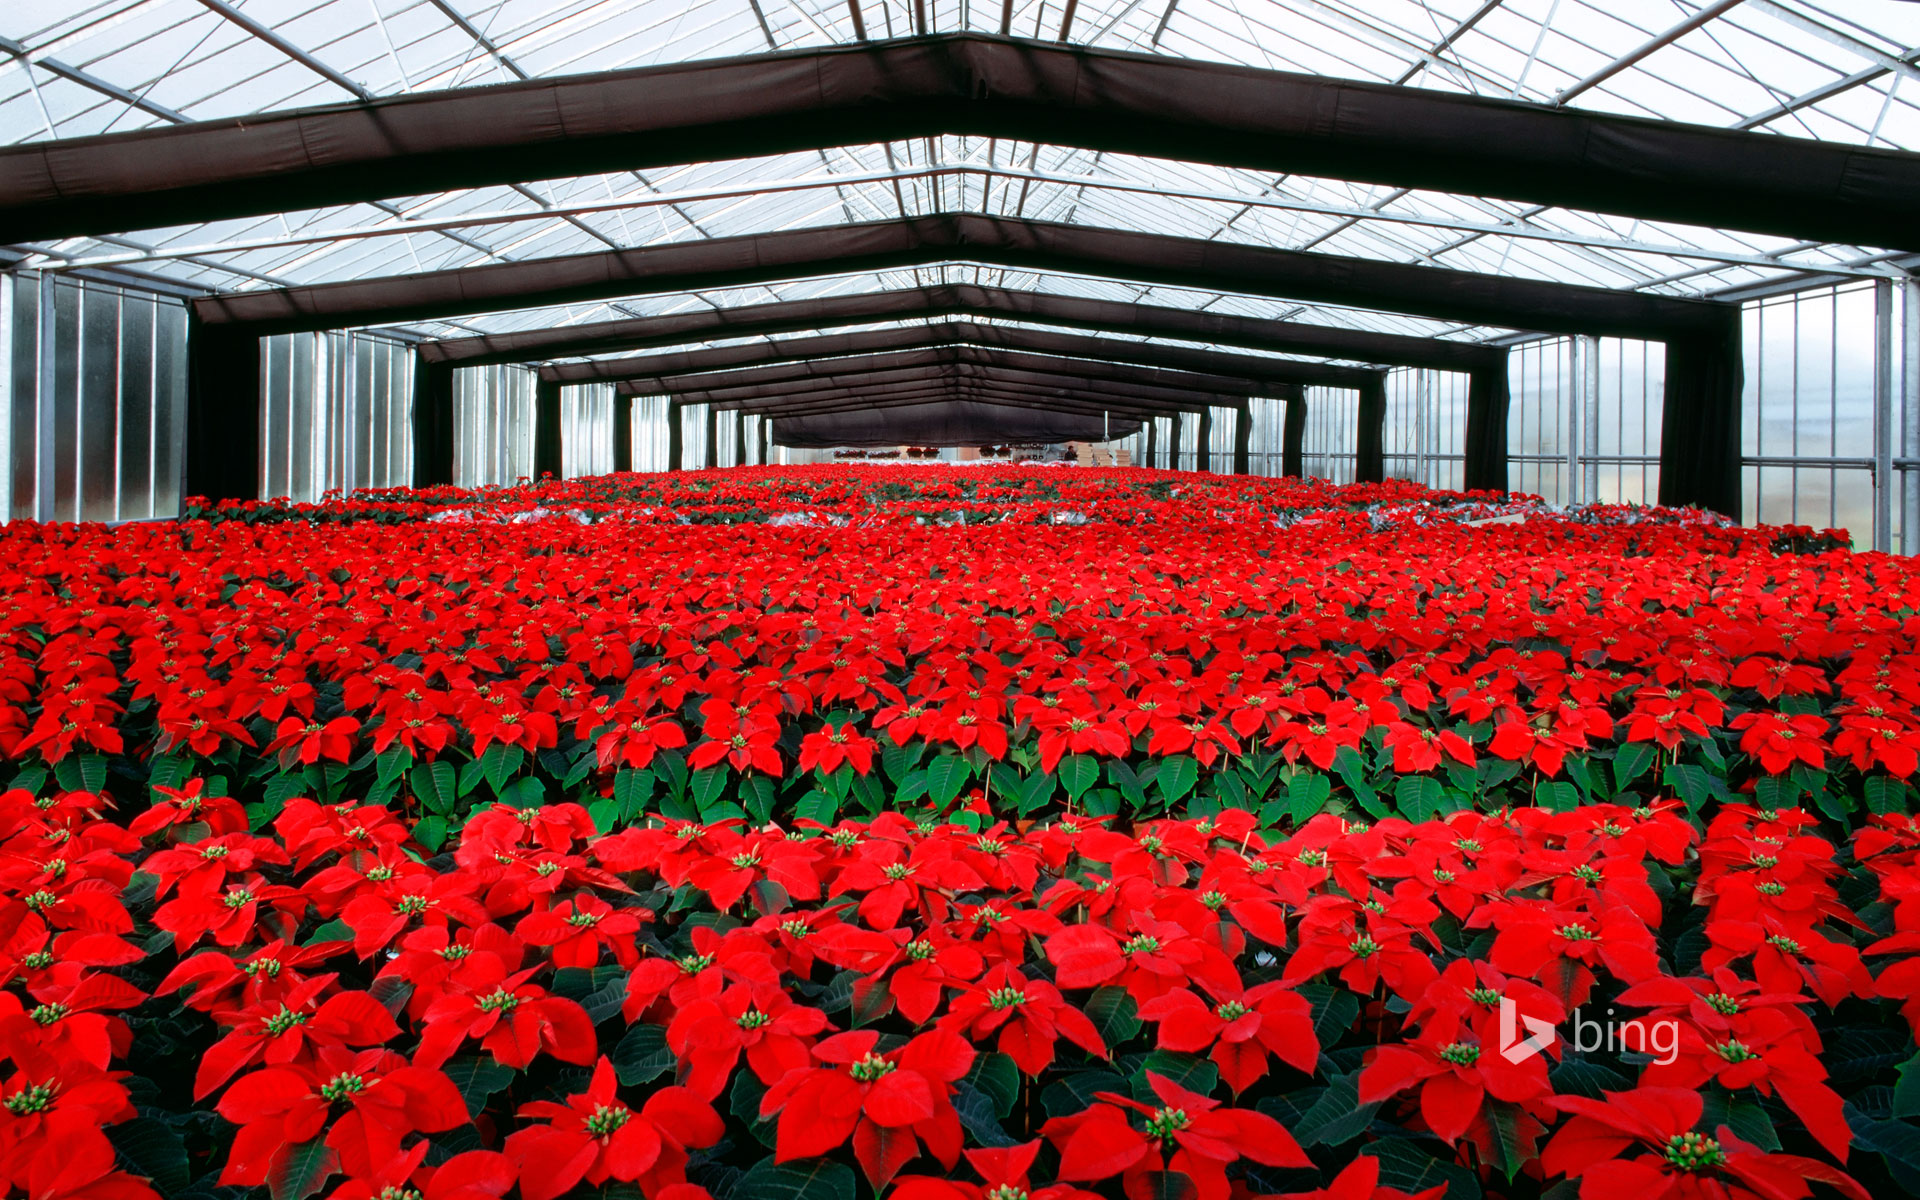 Poinsettia plants under cultivation in a greenhouse